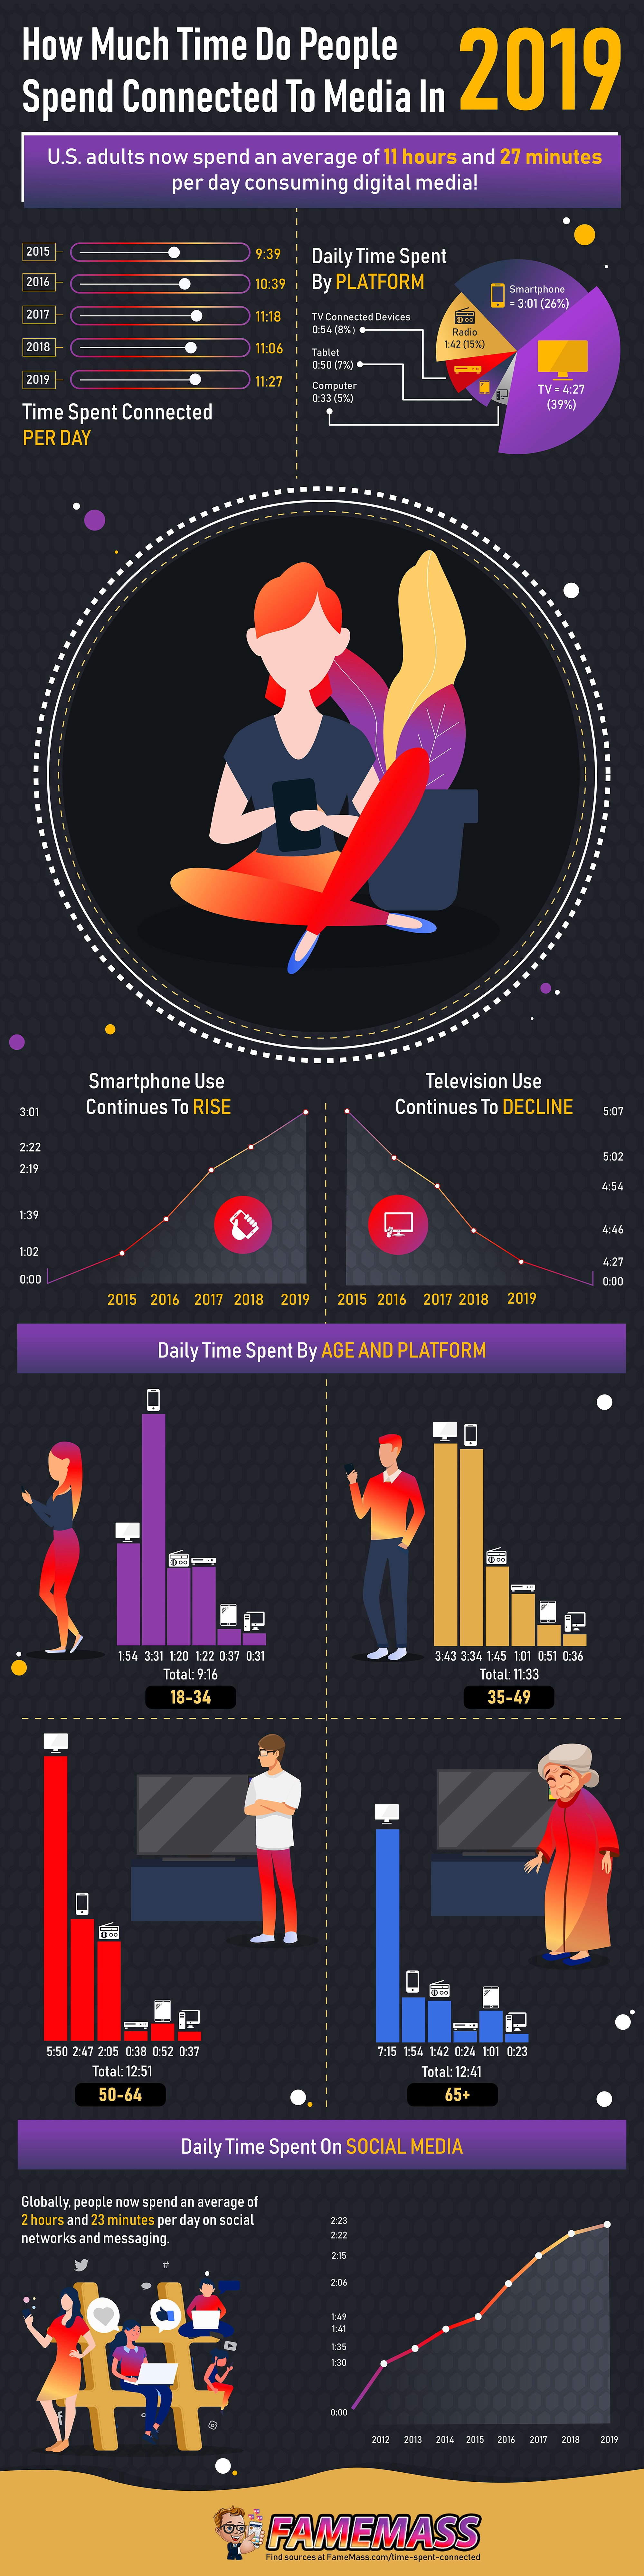 How Much Time People Spend Connected to Media in 2019